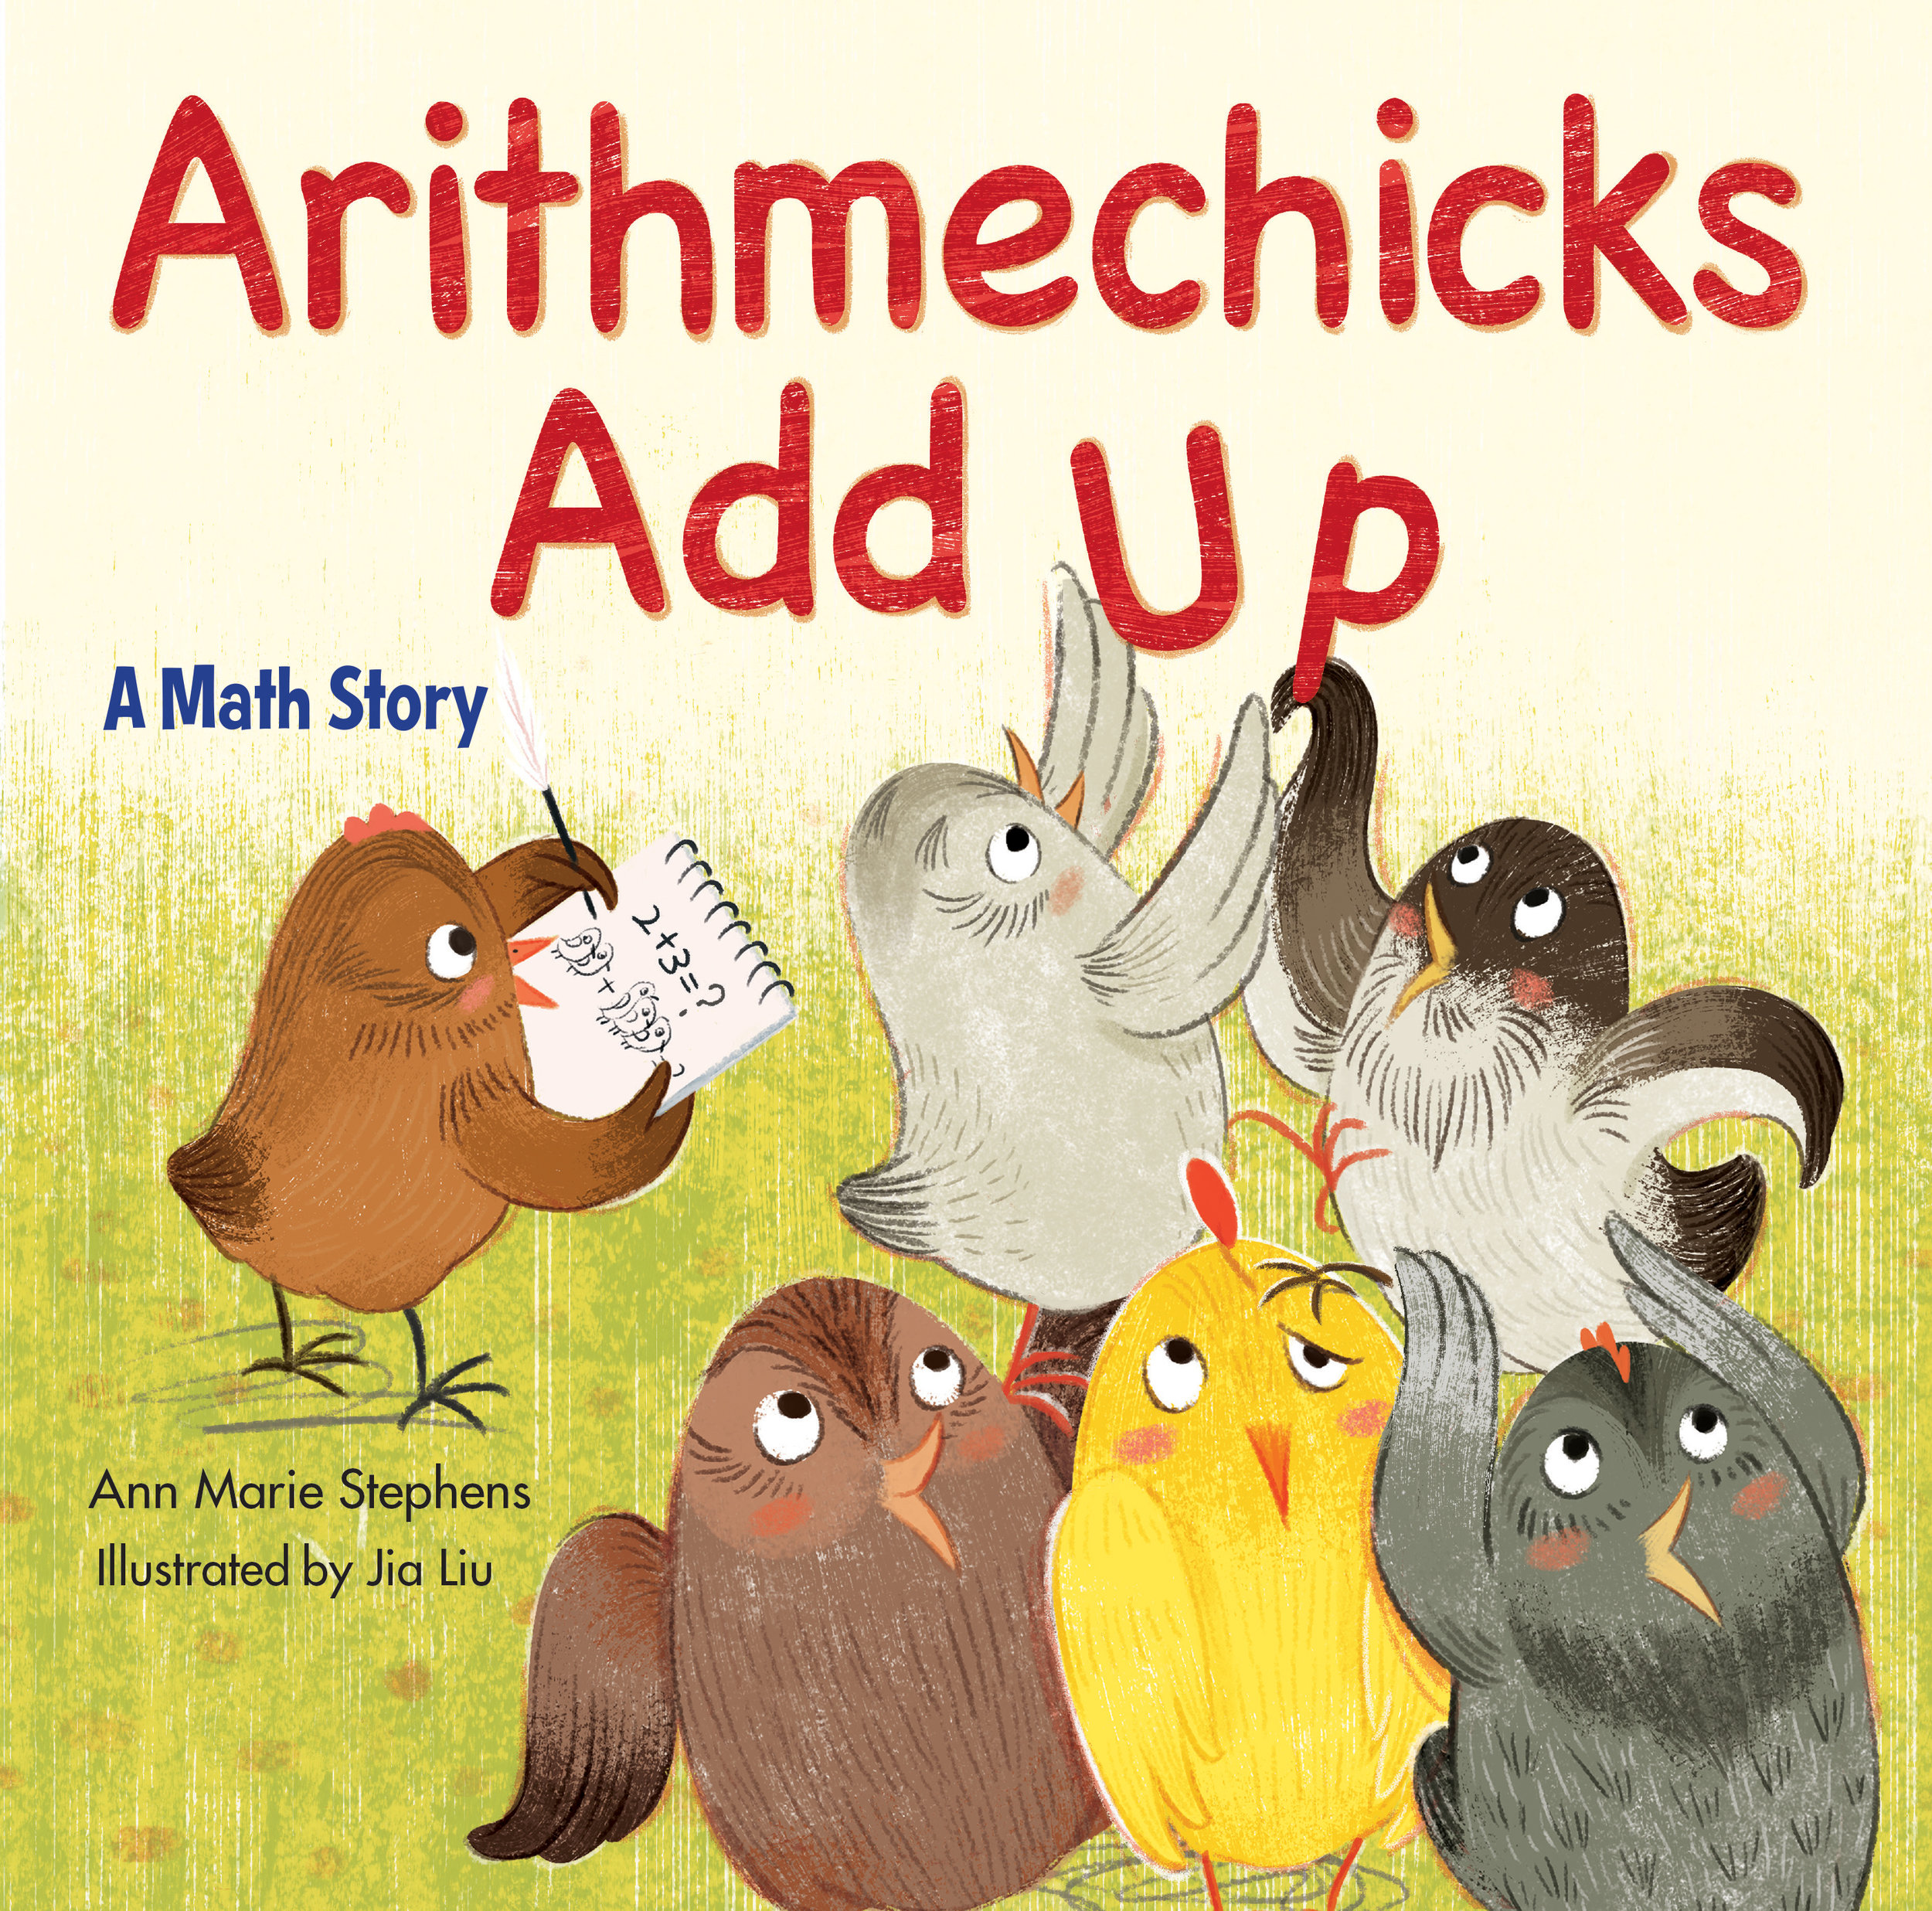 Arithmechicks Add Up by Ann Marie Stephens, illustrated by Jia Liu (Boyds Mill Press)